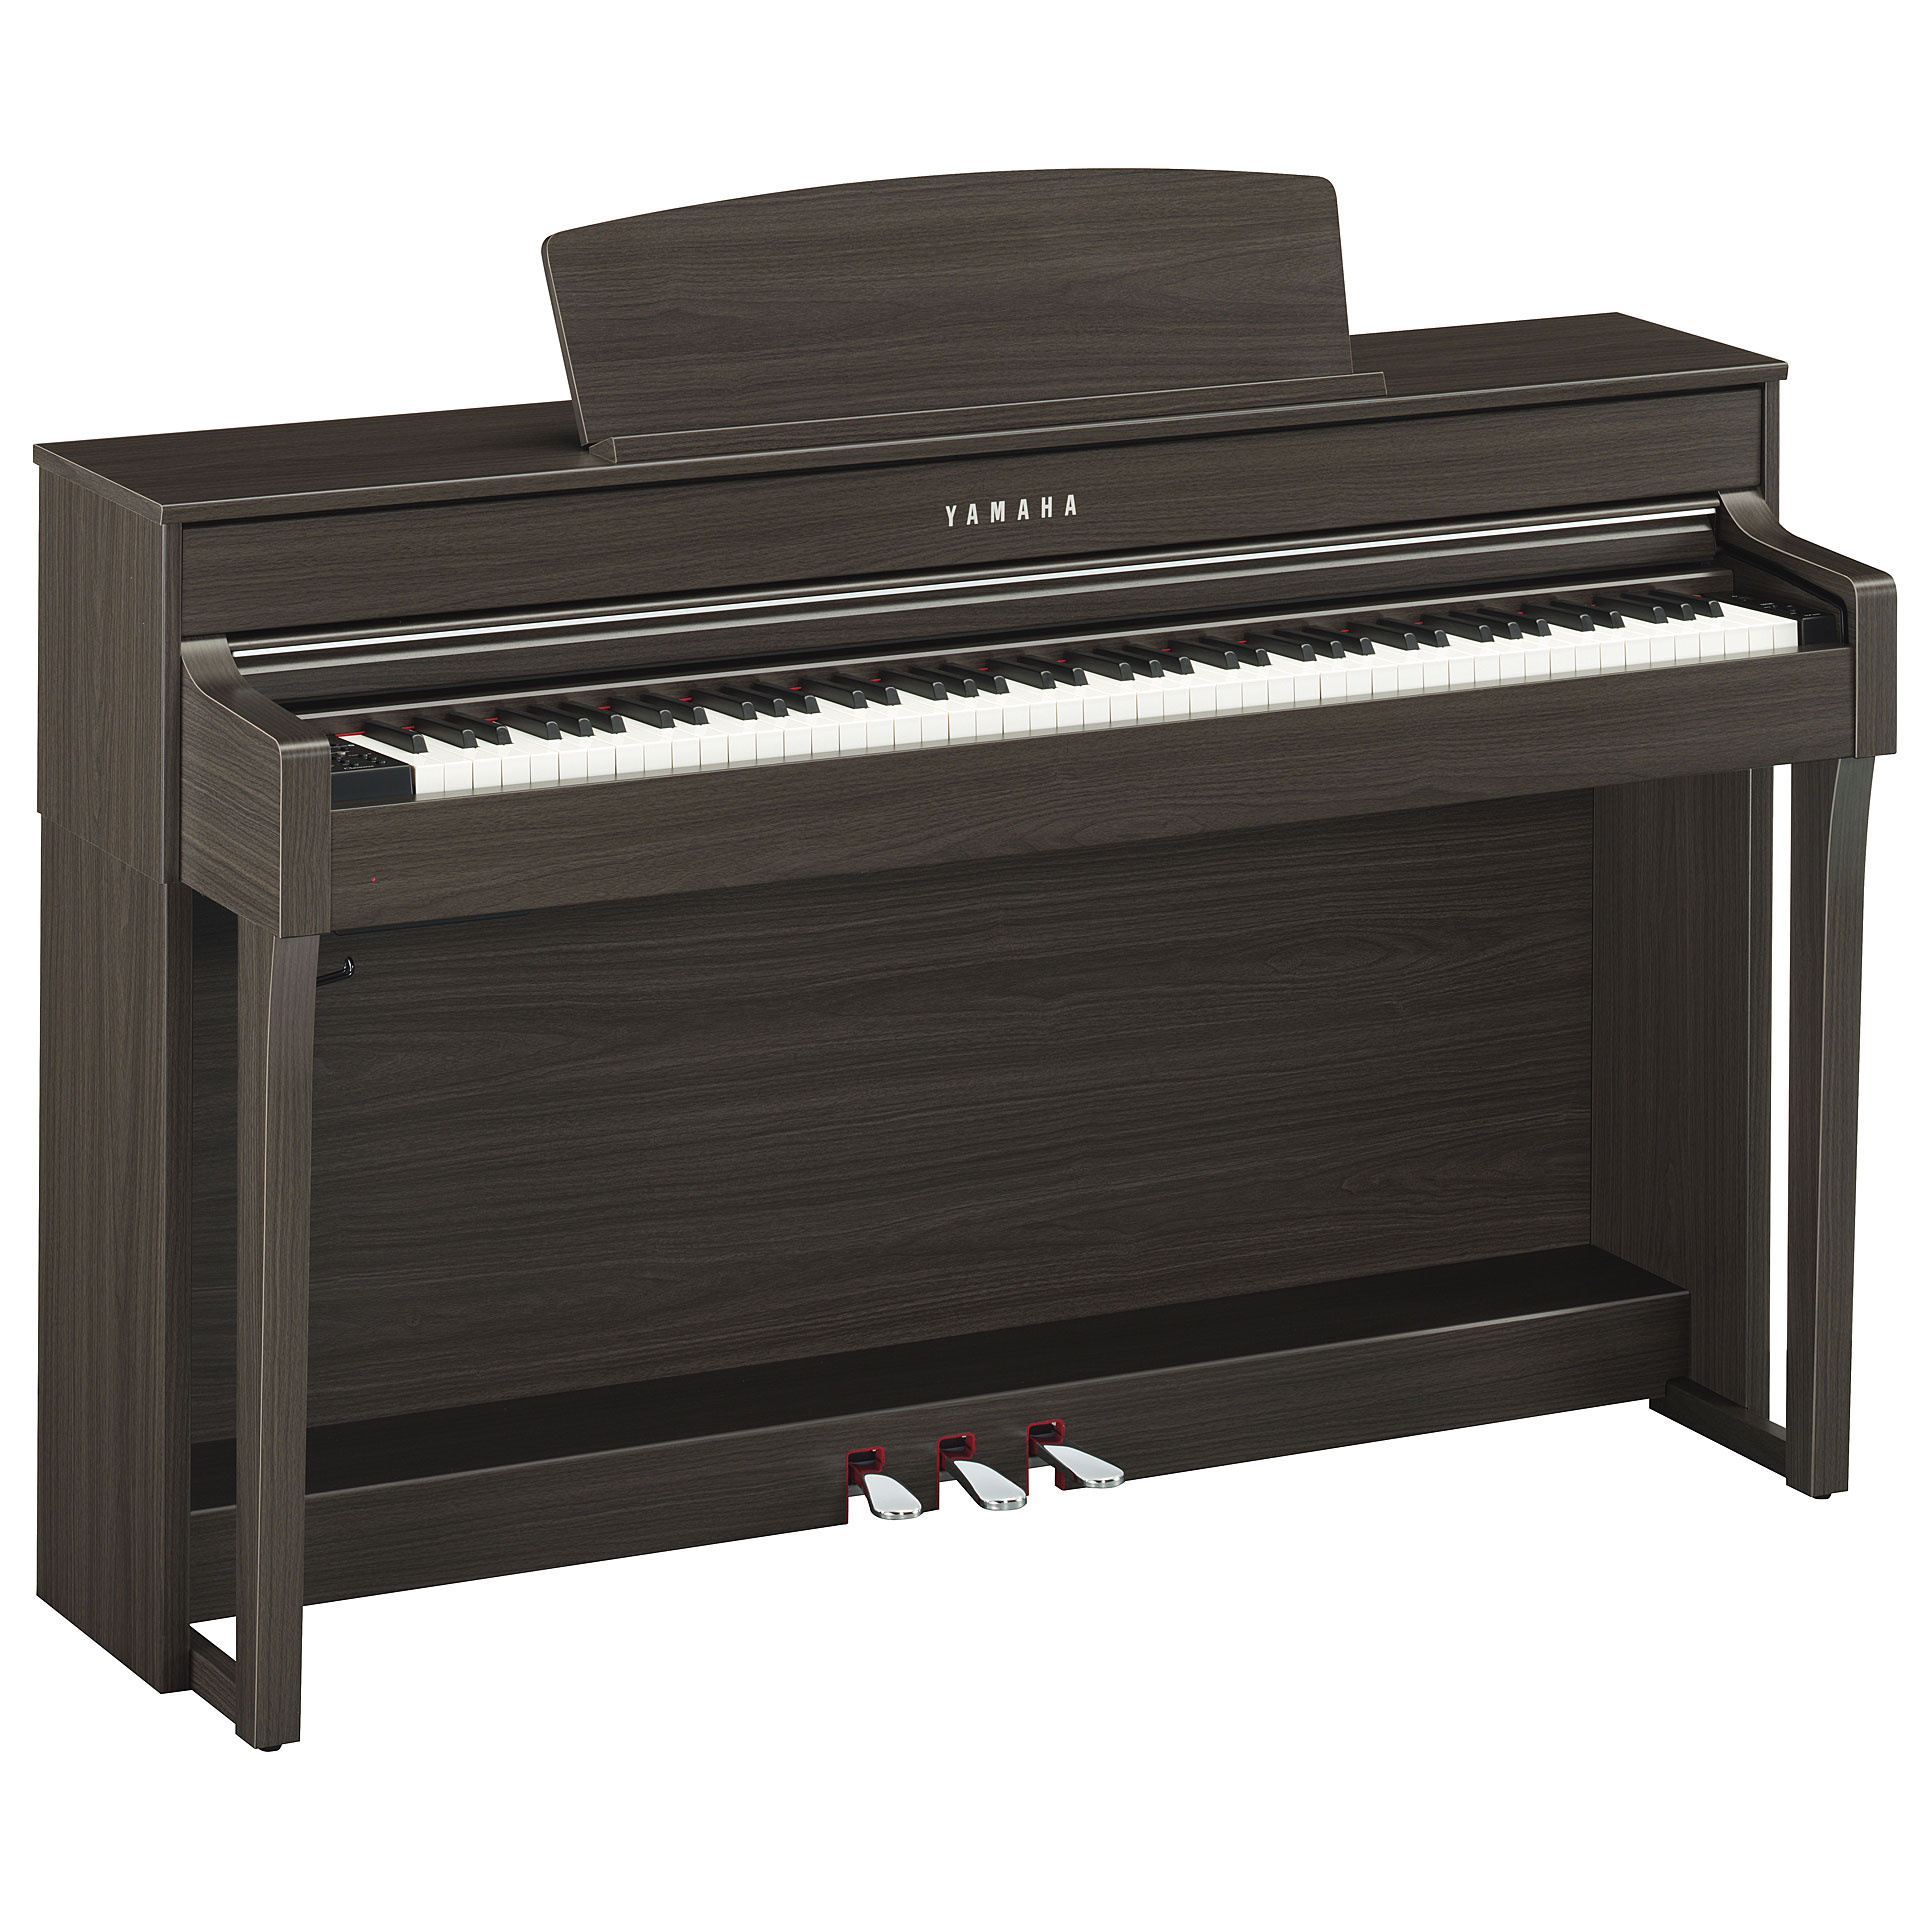 yamaha clavinova clp 645dw digital piano. Black Bedroom Furniture Sets. Home Design Ideas